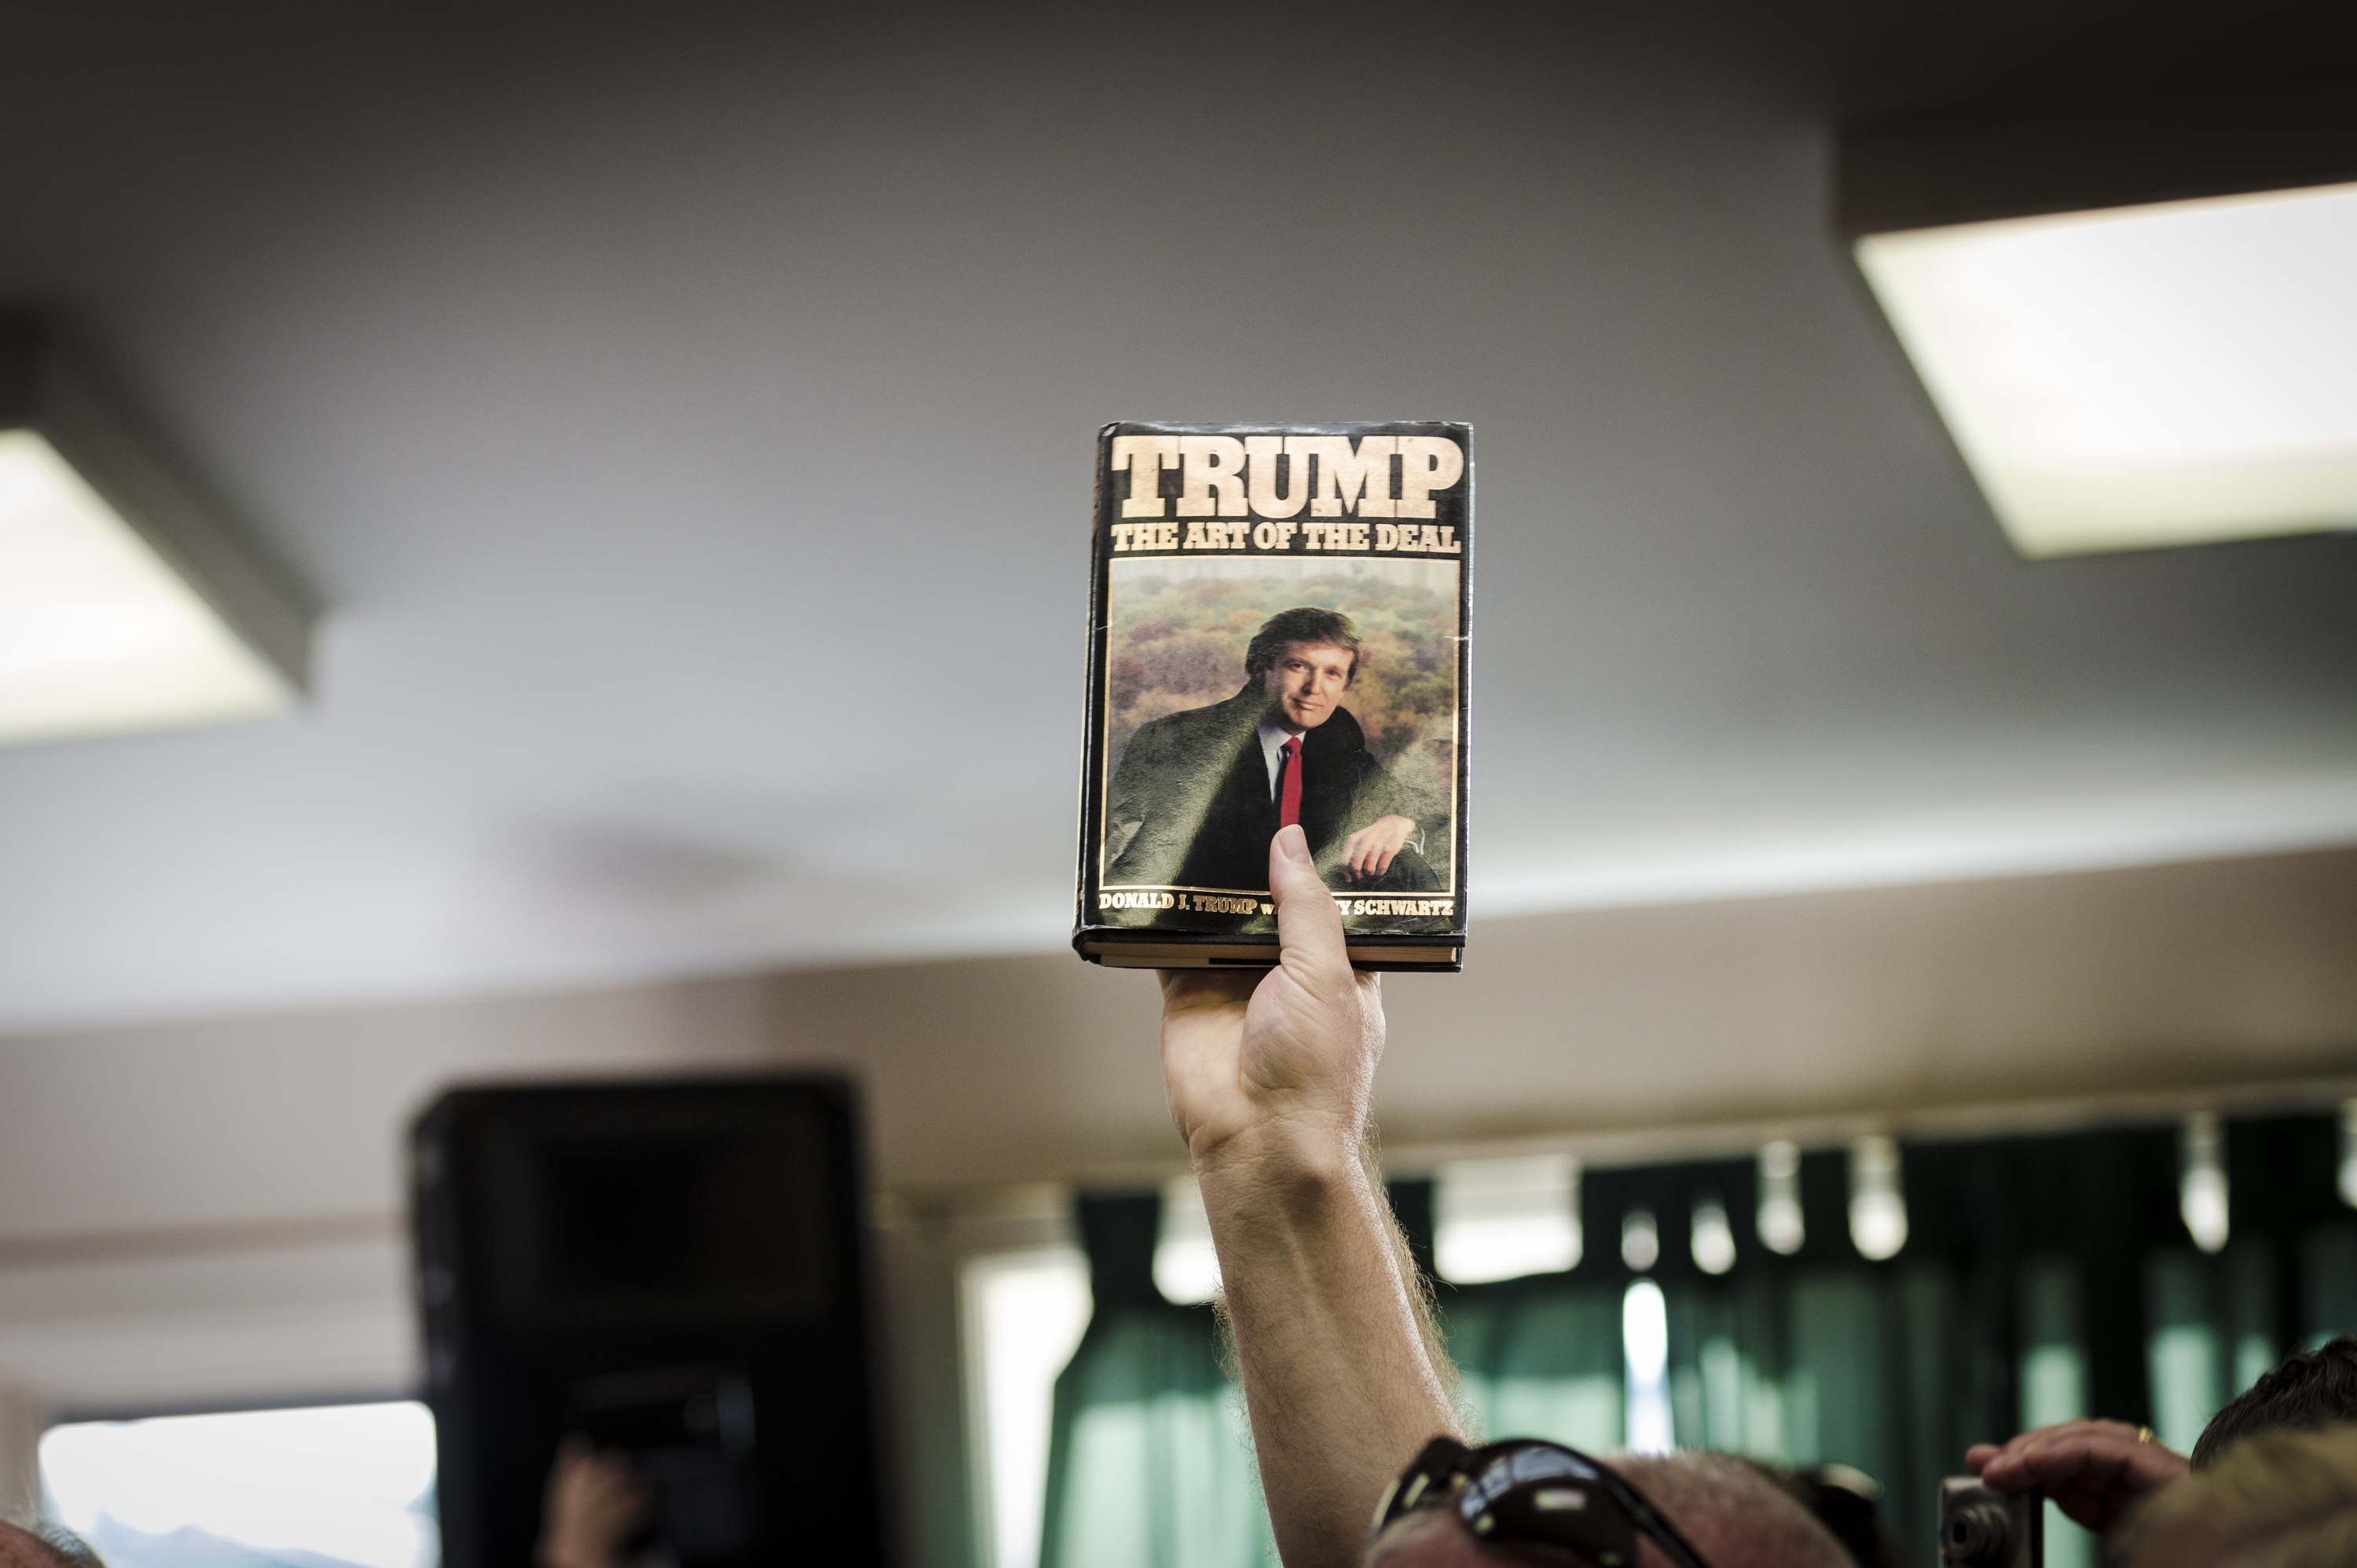 A supporter holds up a copy of Donald Trump's book 'The Art of the Deal,' by Tony Schwartz, at a rally in Laconia, N.H. (Ian Thomas Jansen-Lonnquist/The New York Times)